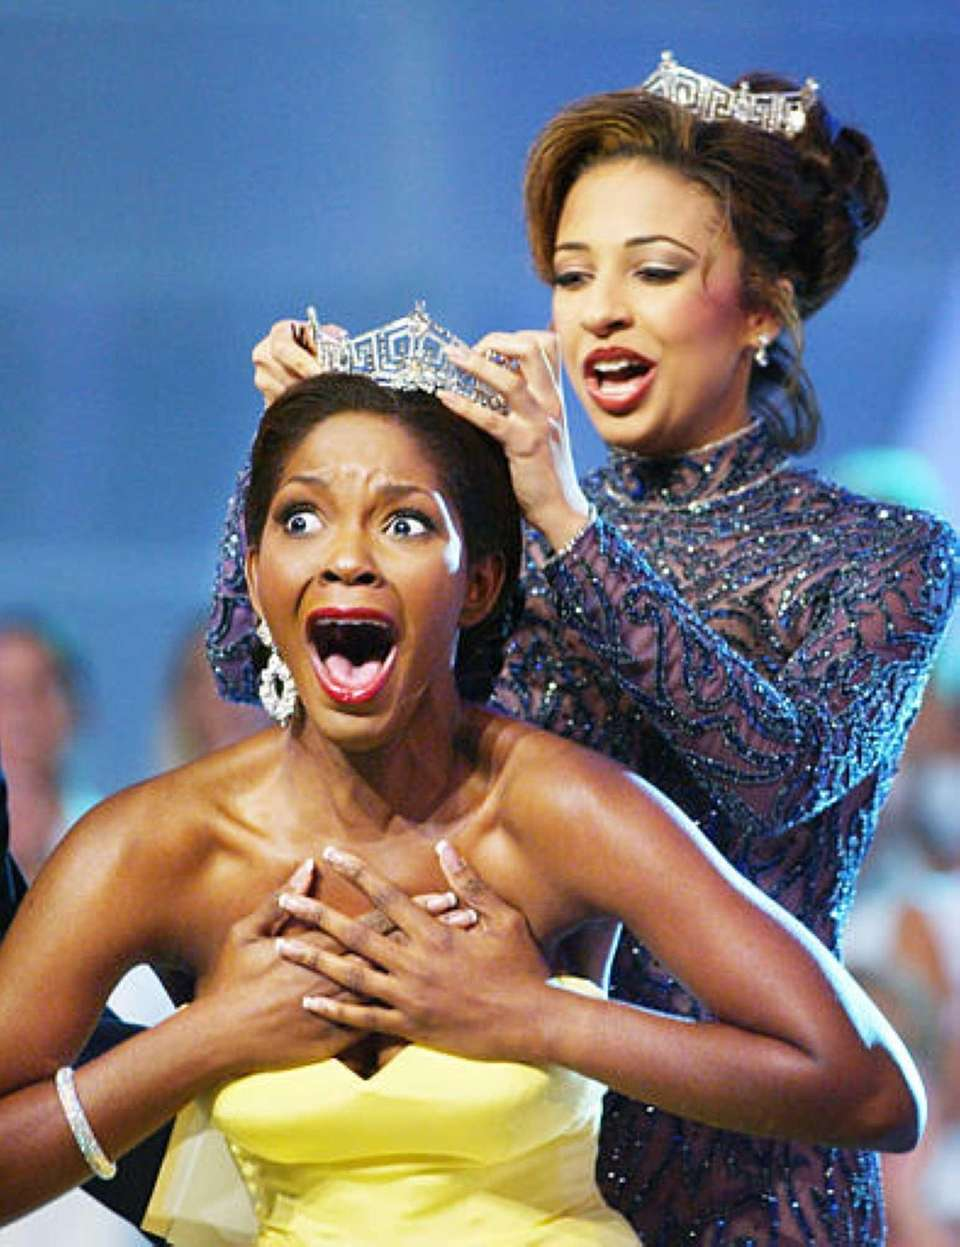 Miss Florida, Ericka Dunlap, in yellow, after being